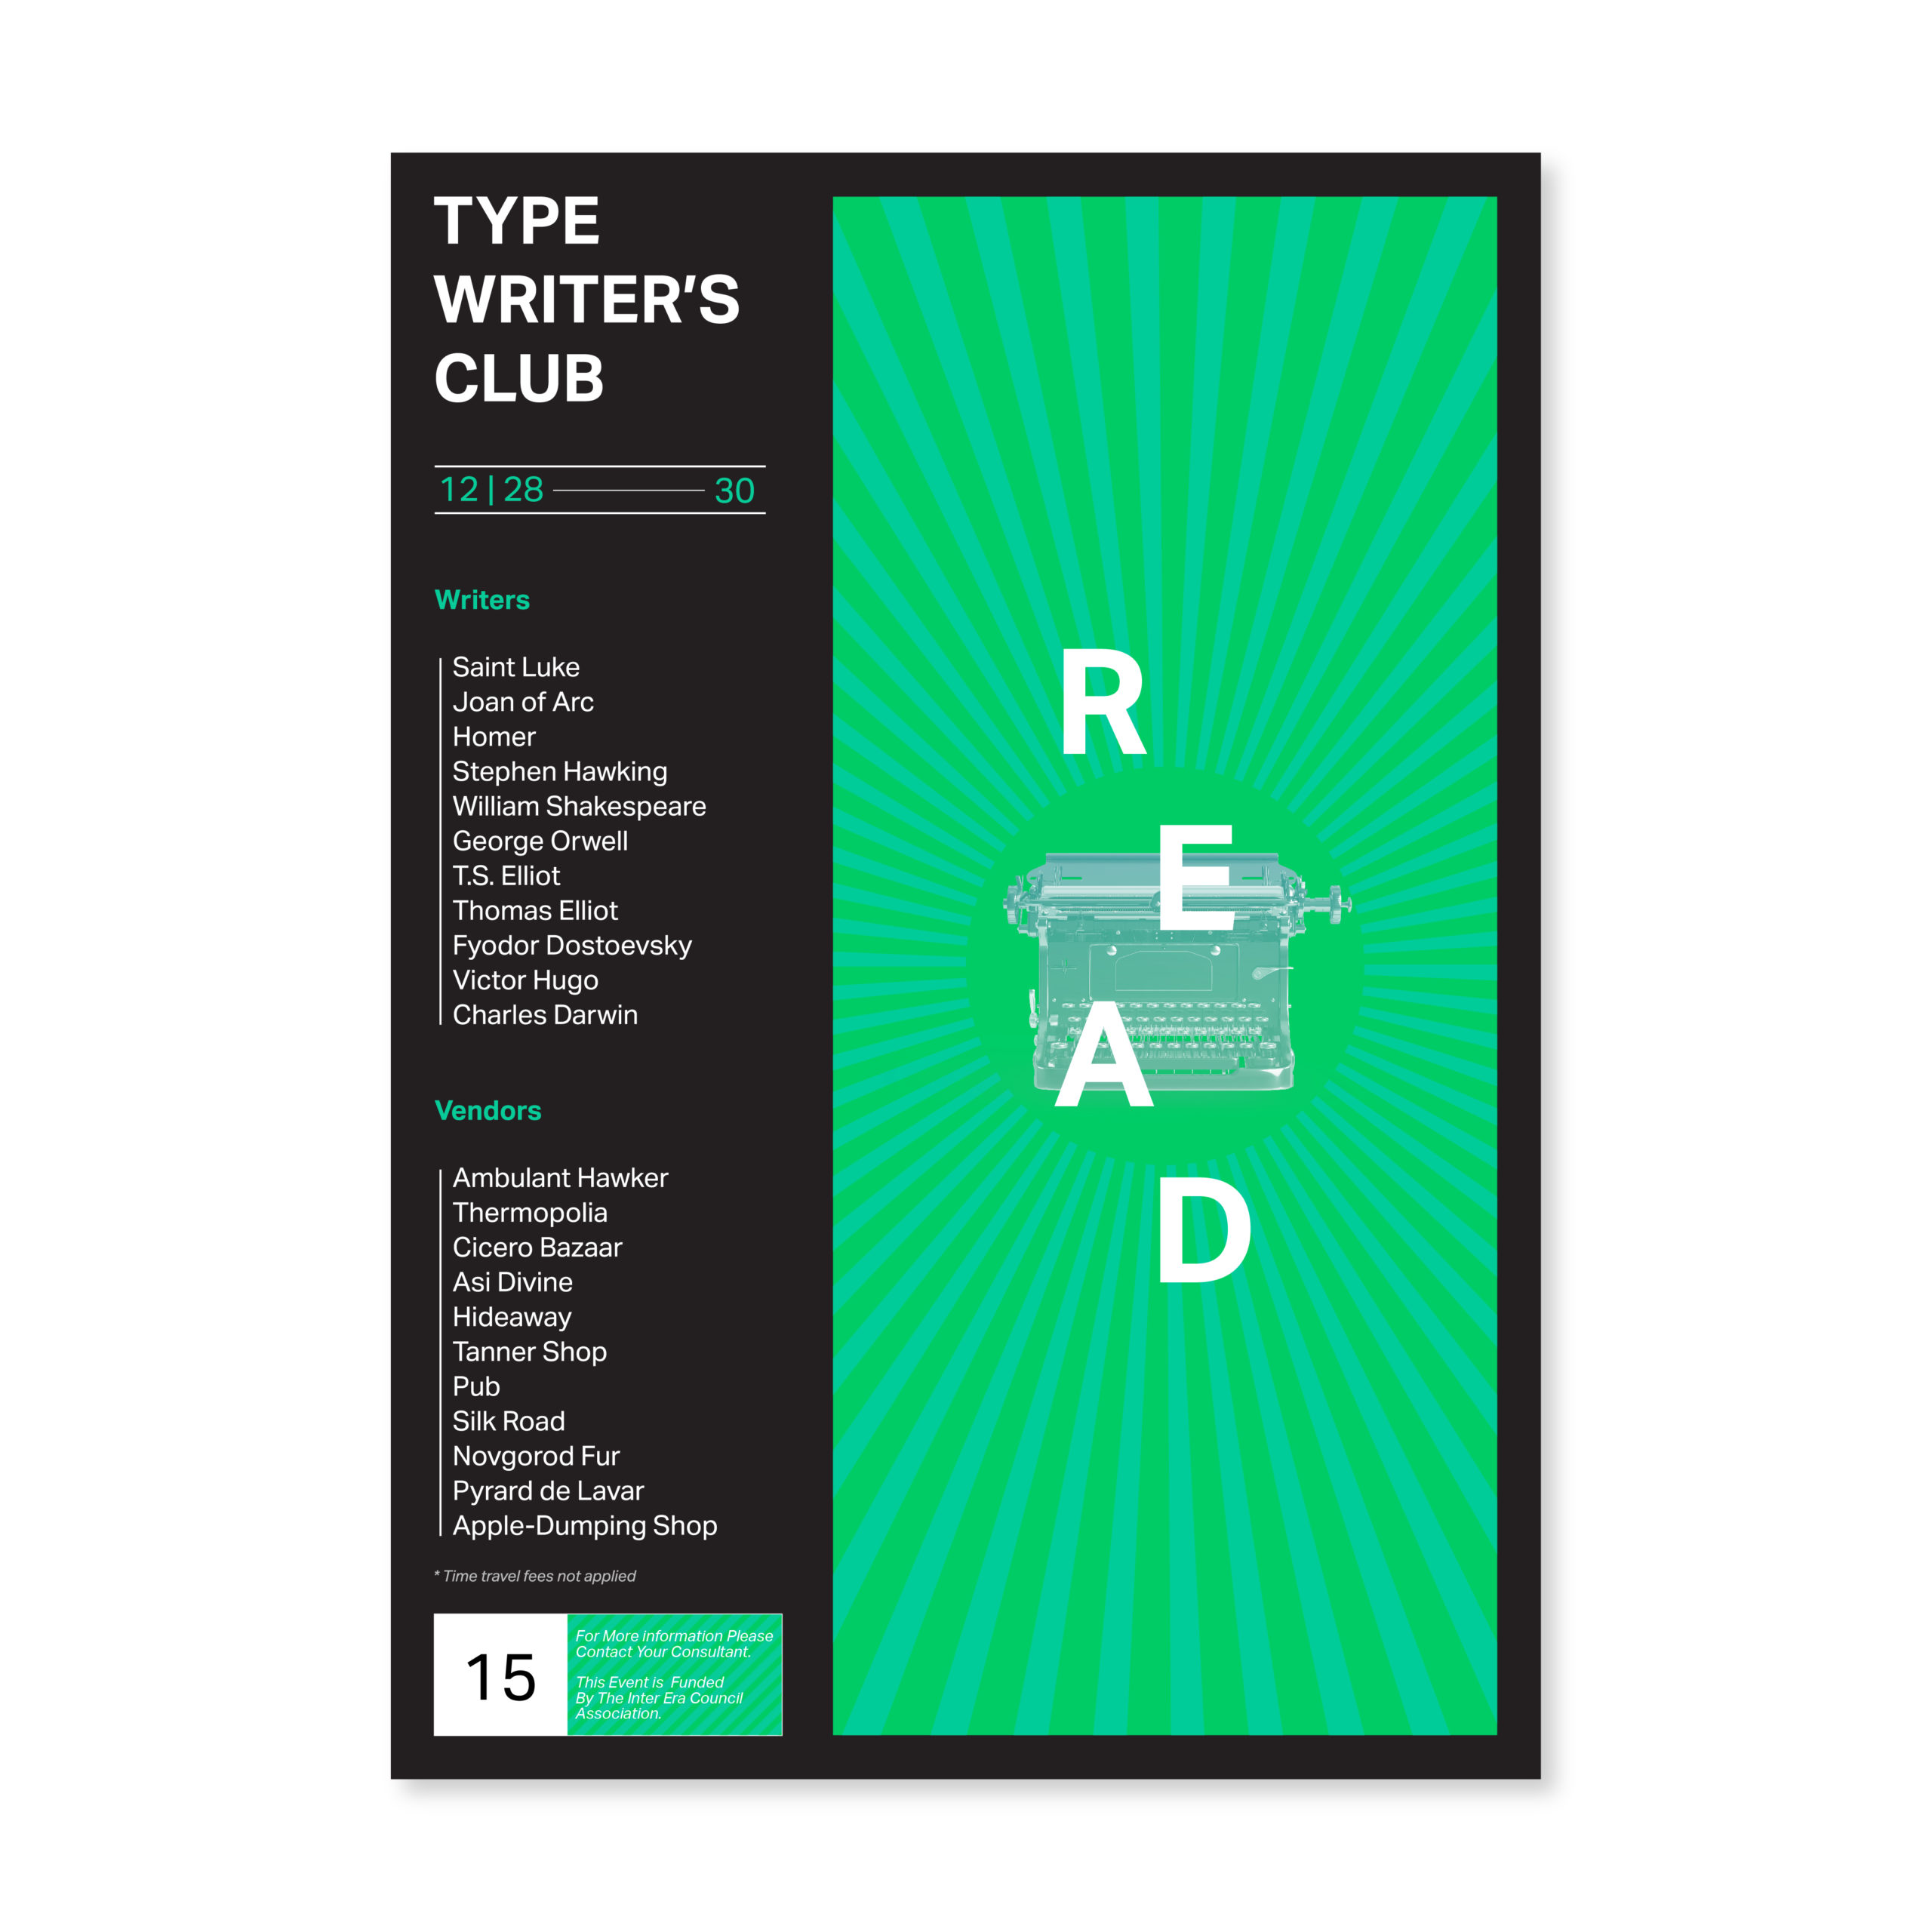 Type-Poster_17-01-1